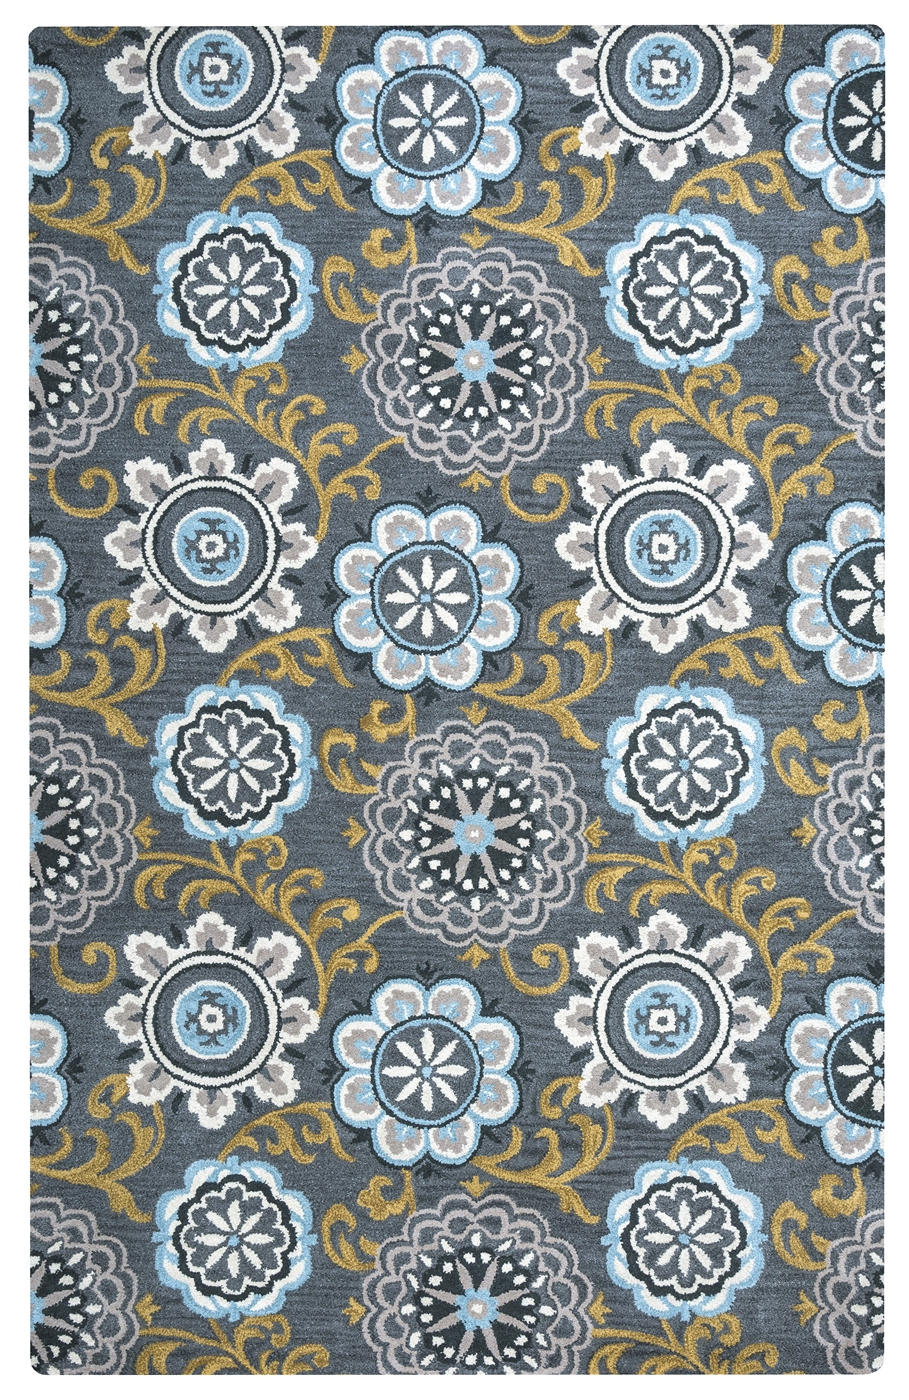 Valintino Floral Medallion Print Wool Area Rug In Navy